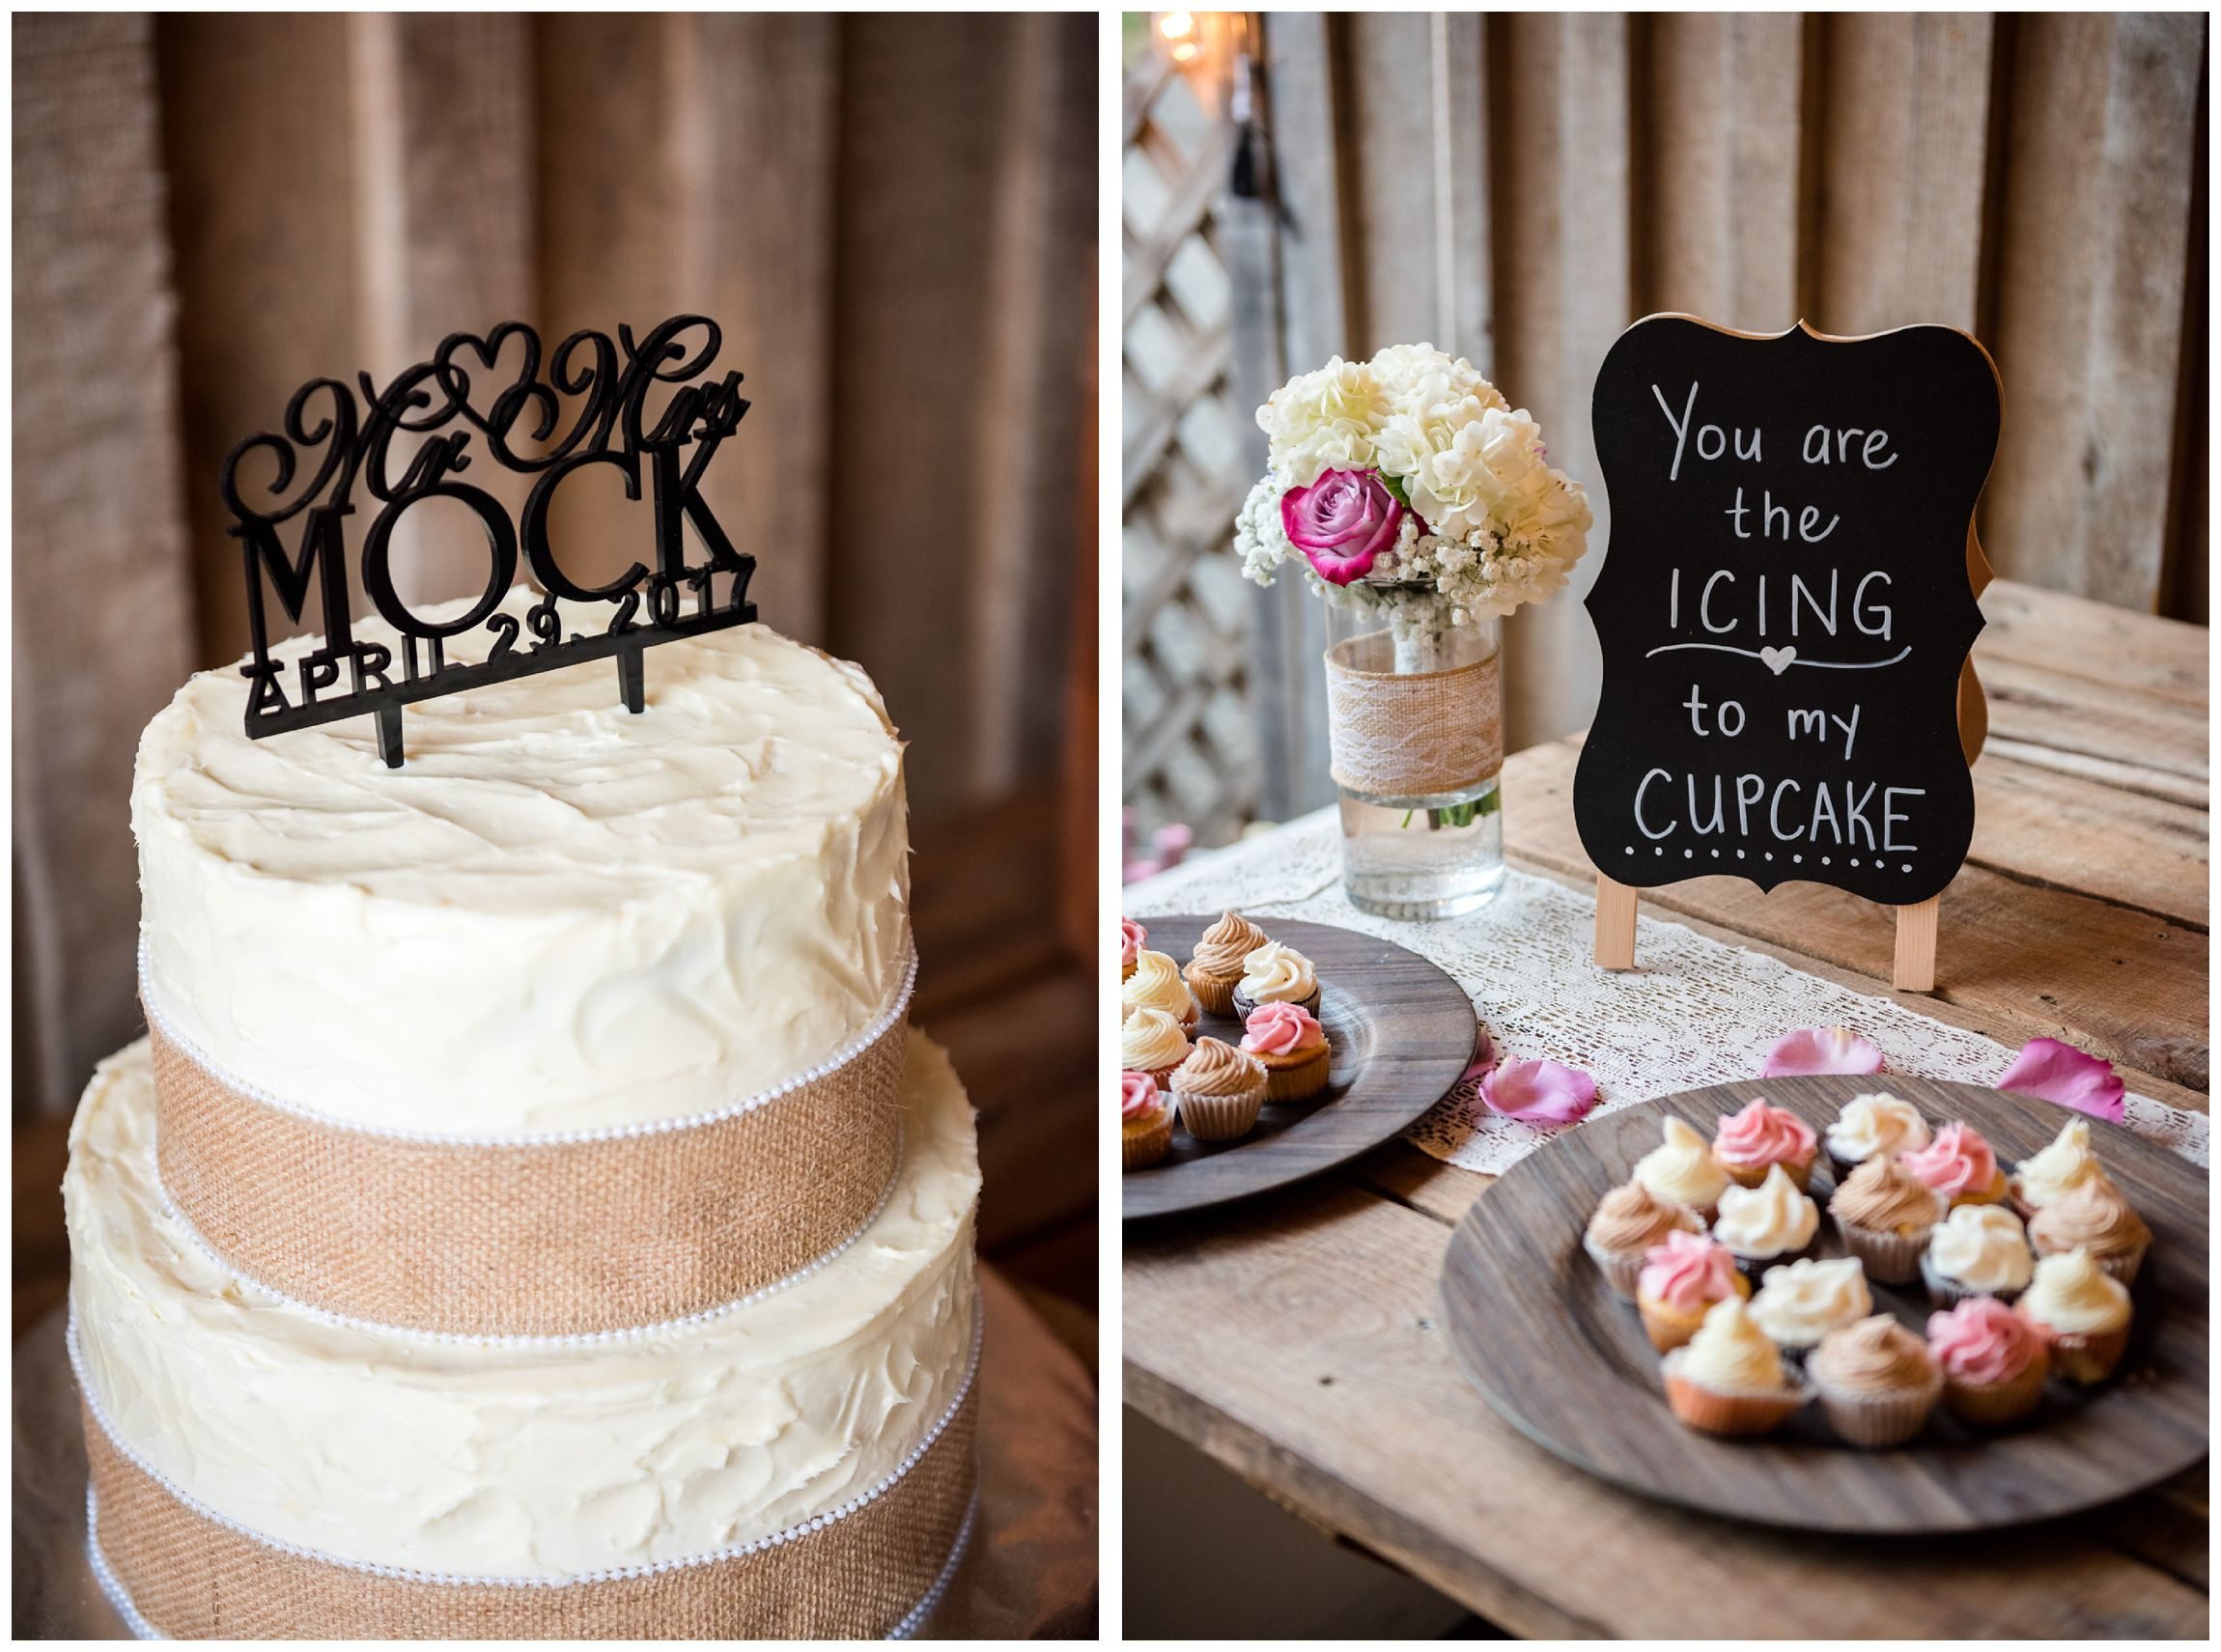 cake with burlap decor and cupcakes at rustic farm wedding reception